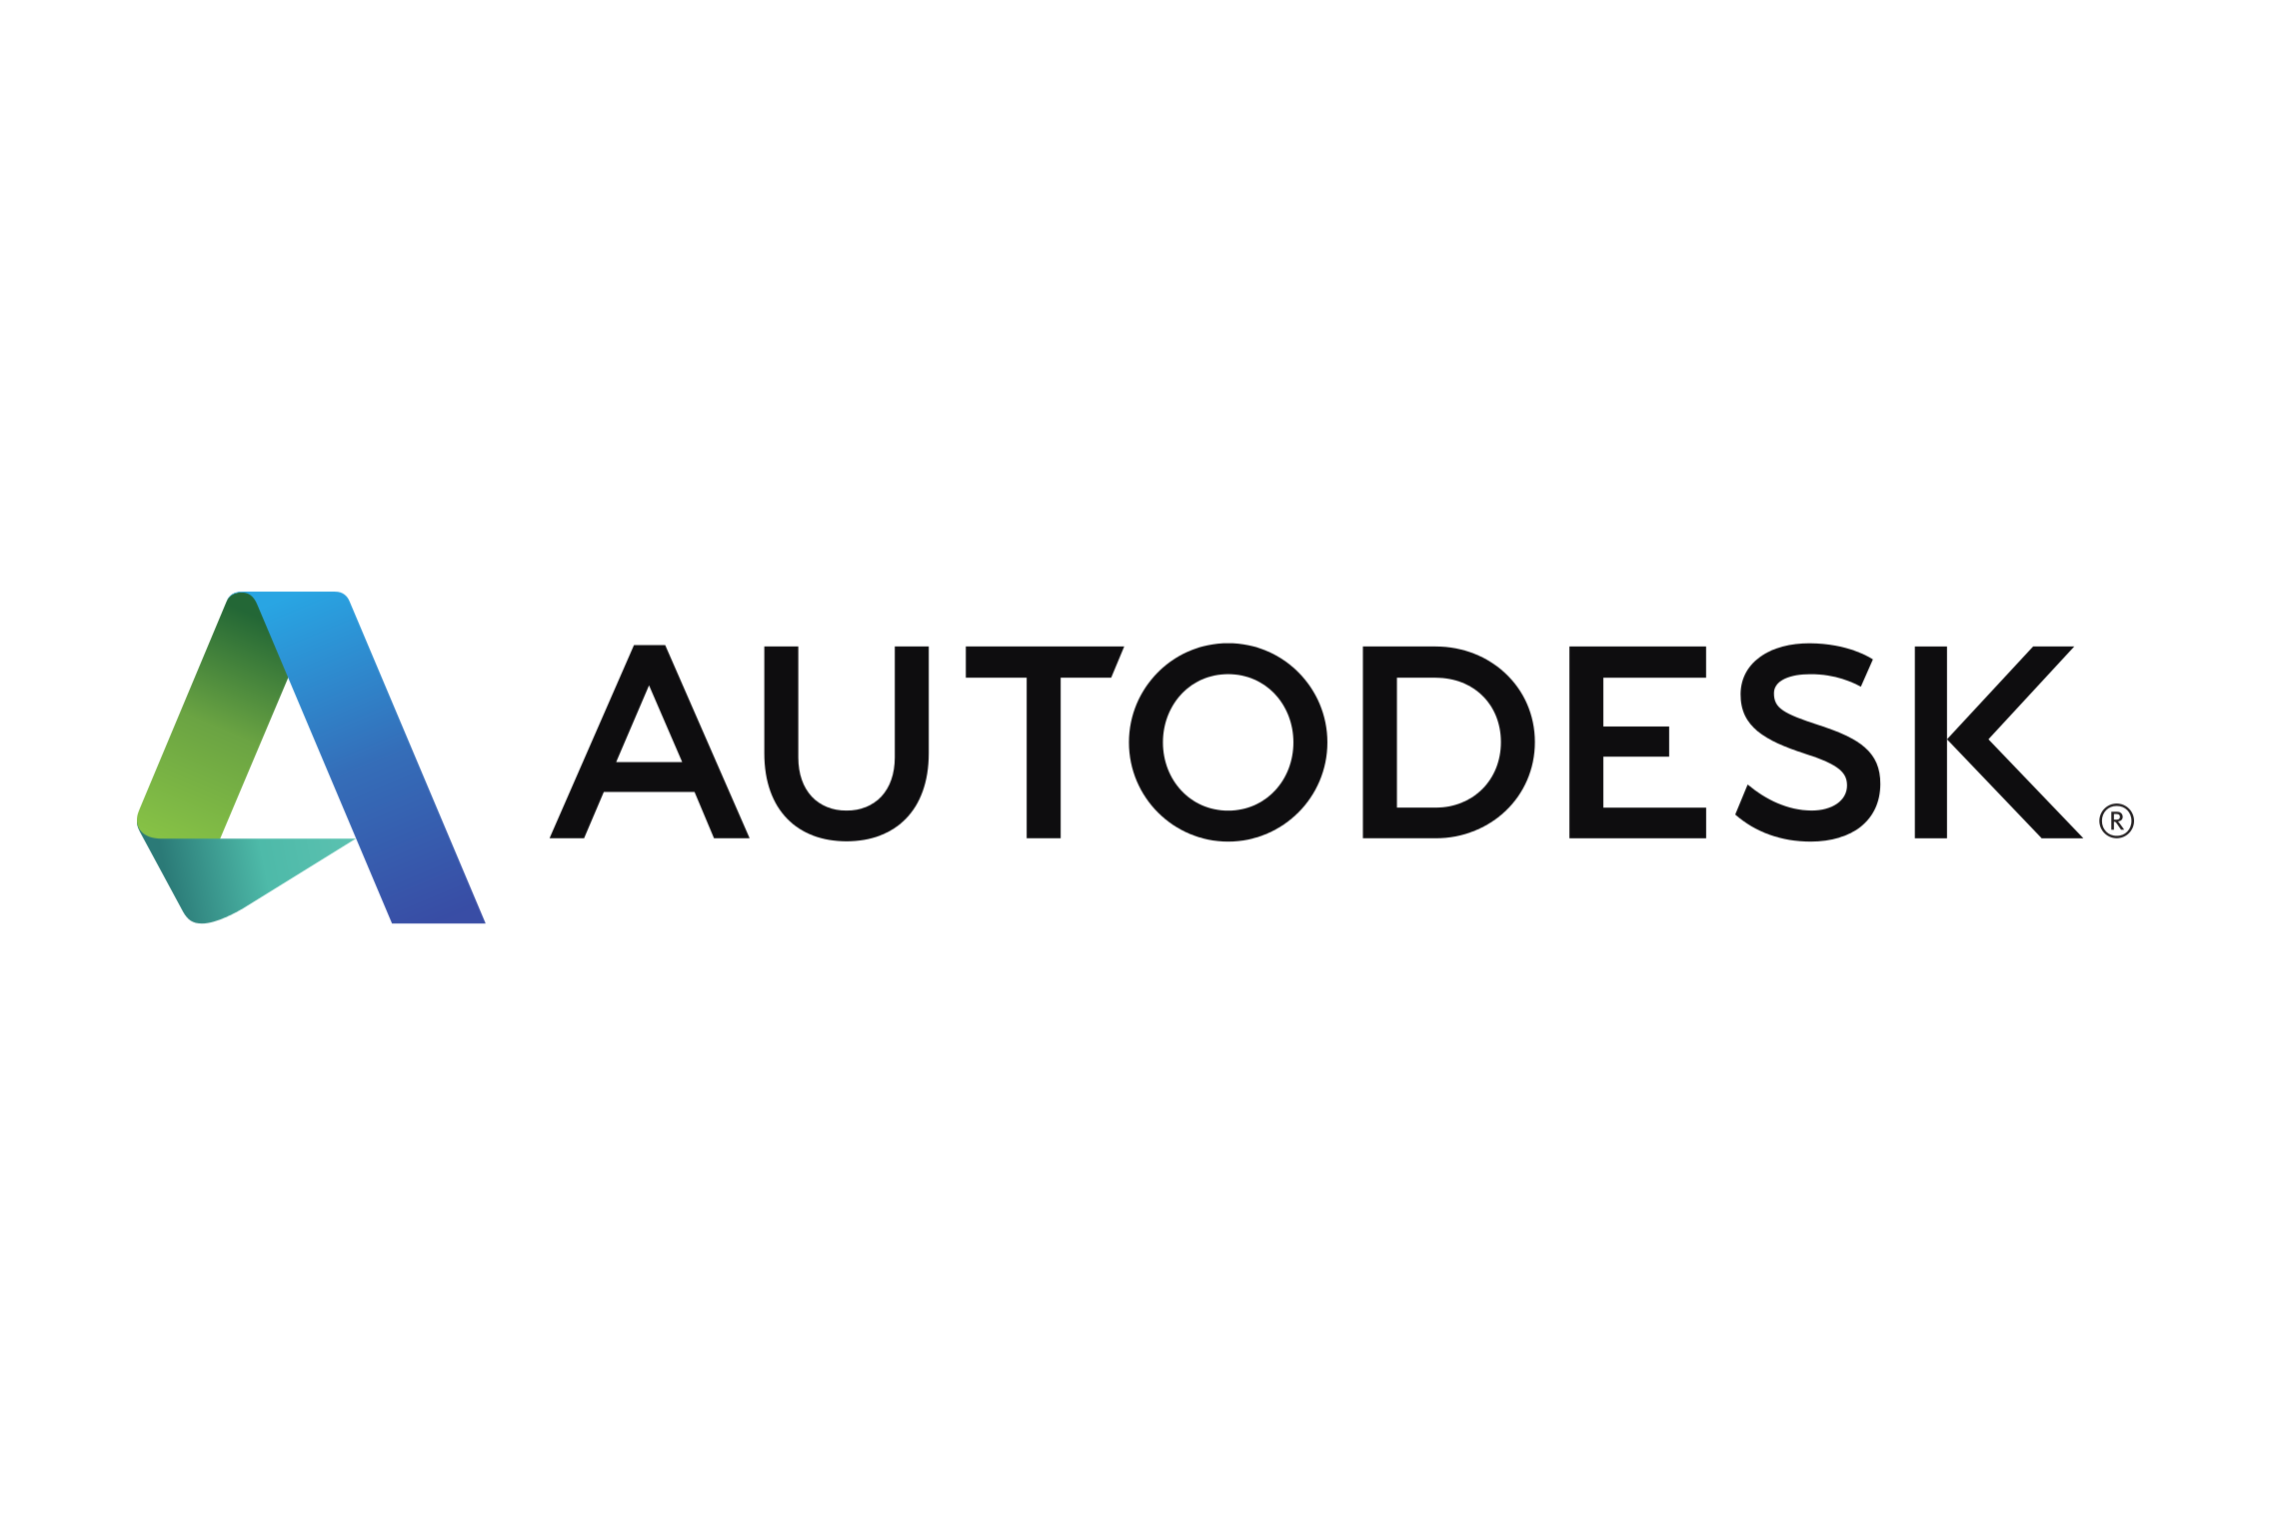 Logo: bimstore announce partnership with Autodesk